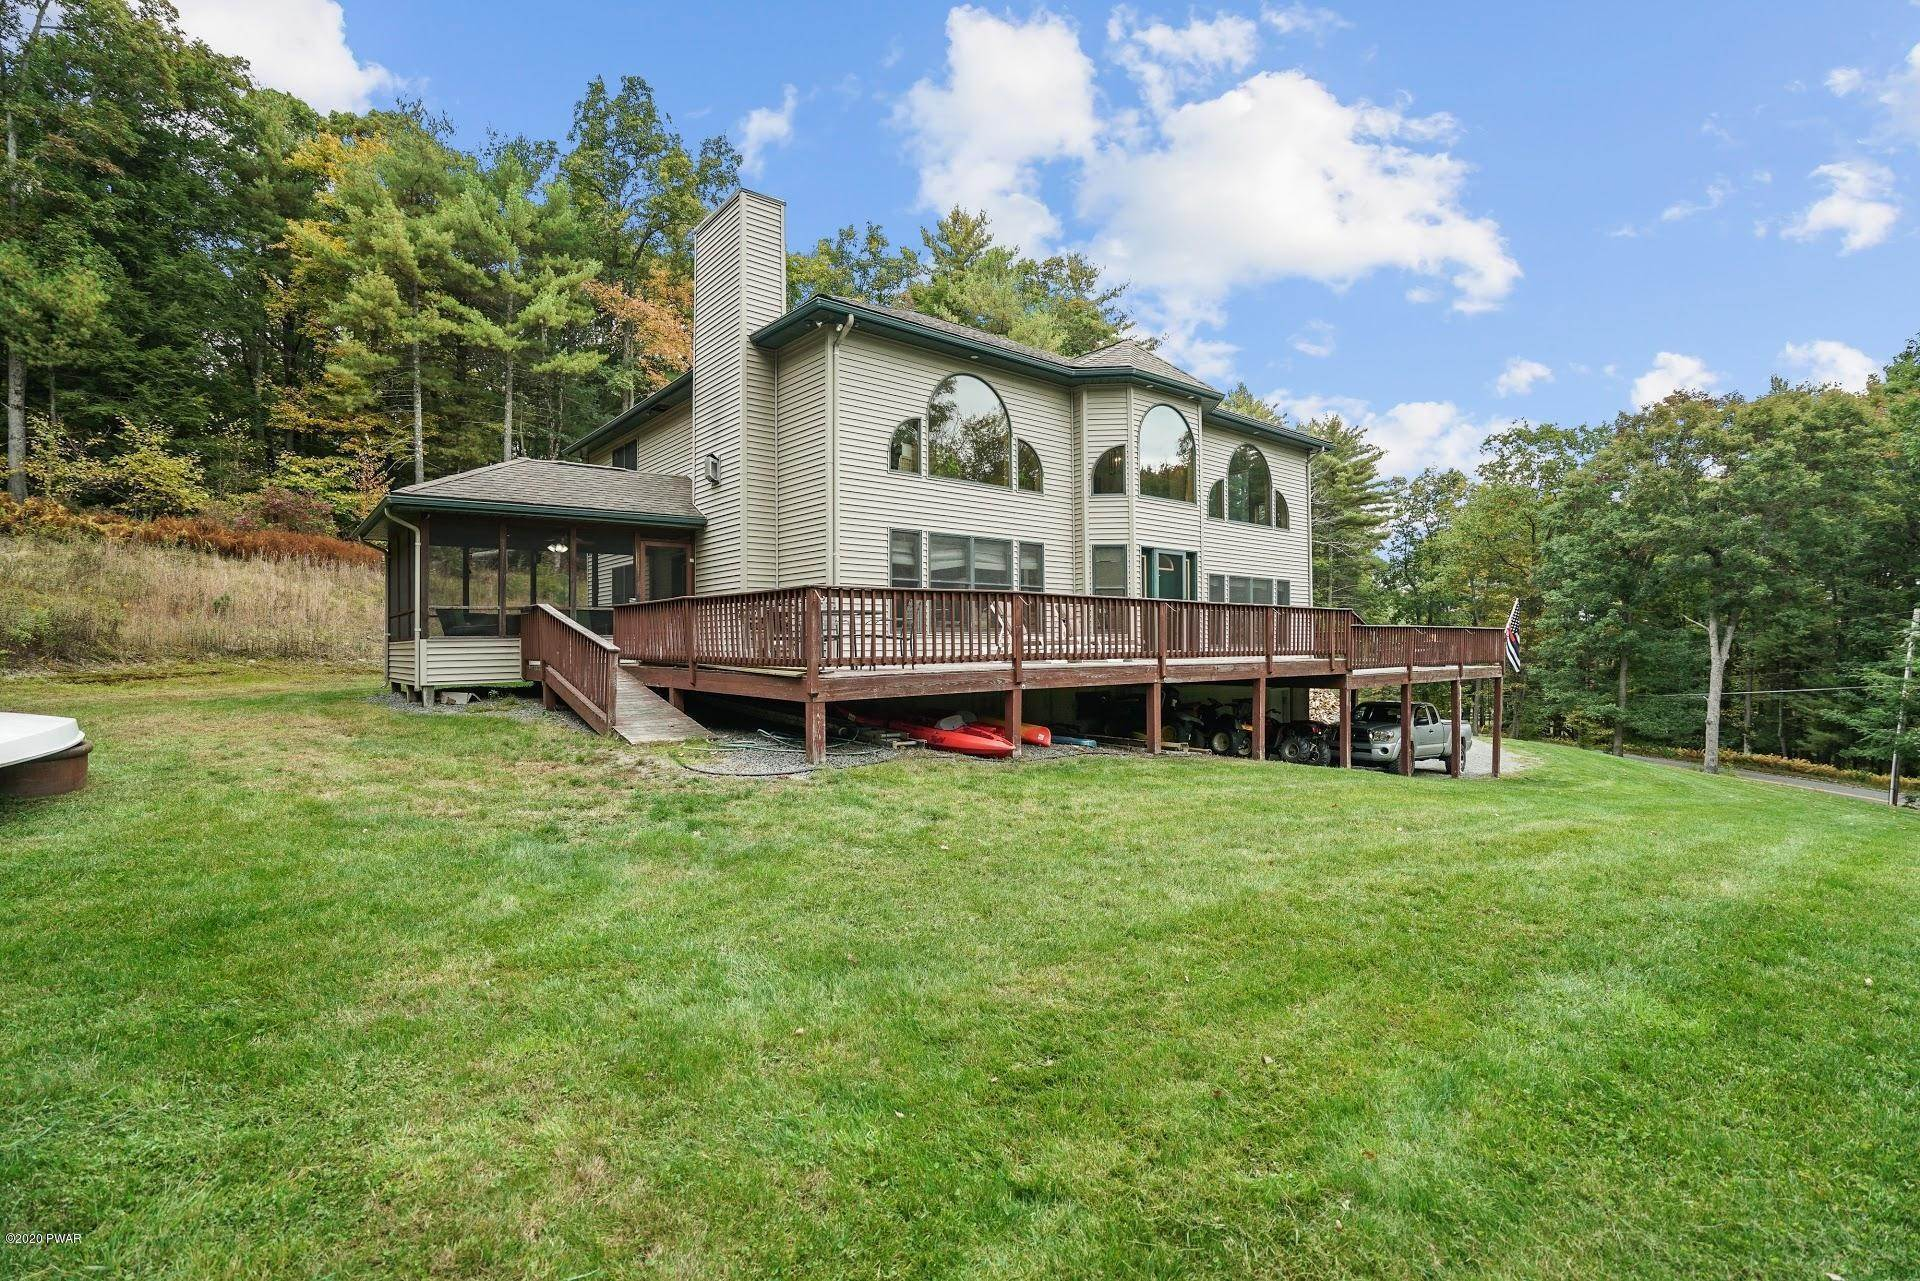 Single Family Homes for Sale at 127 Egypt Rd Tafton, Pennsylvania 18464 United States